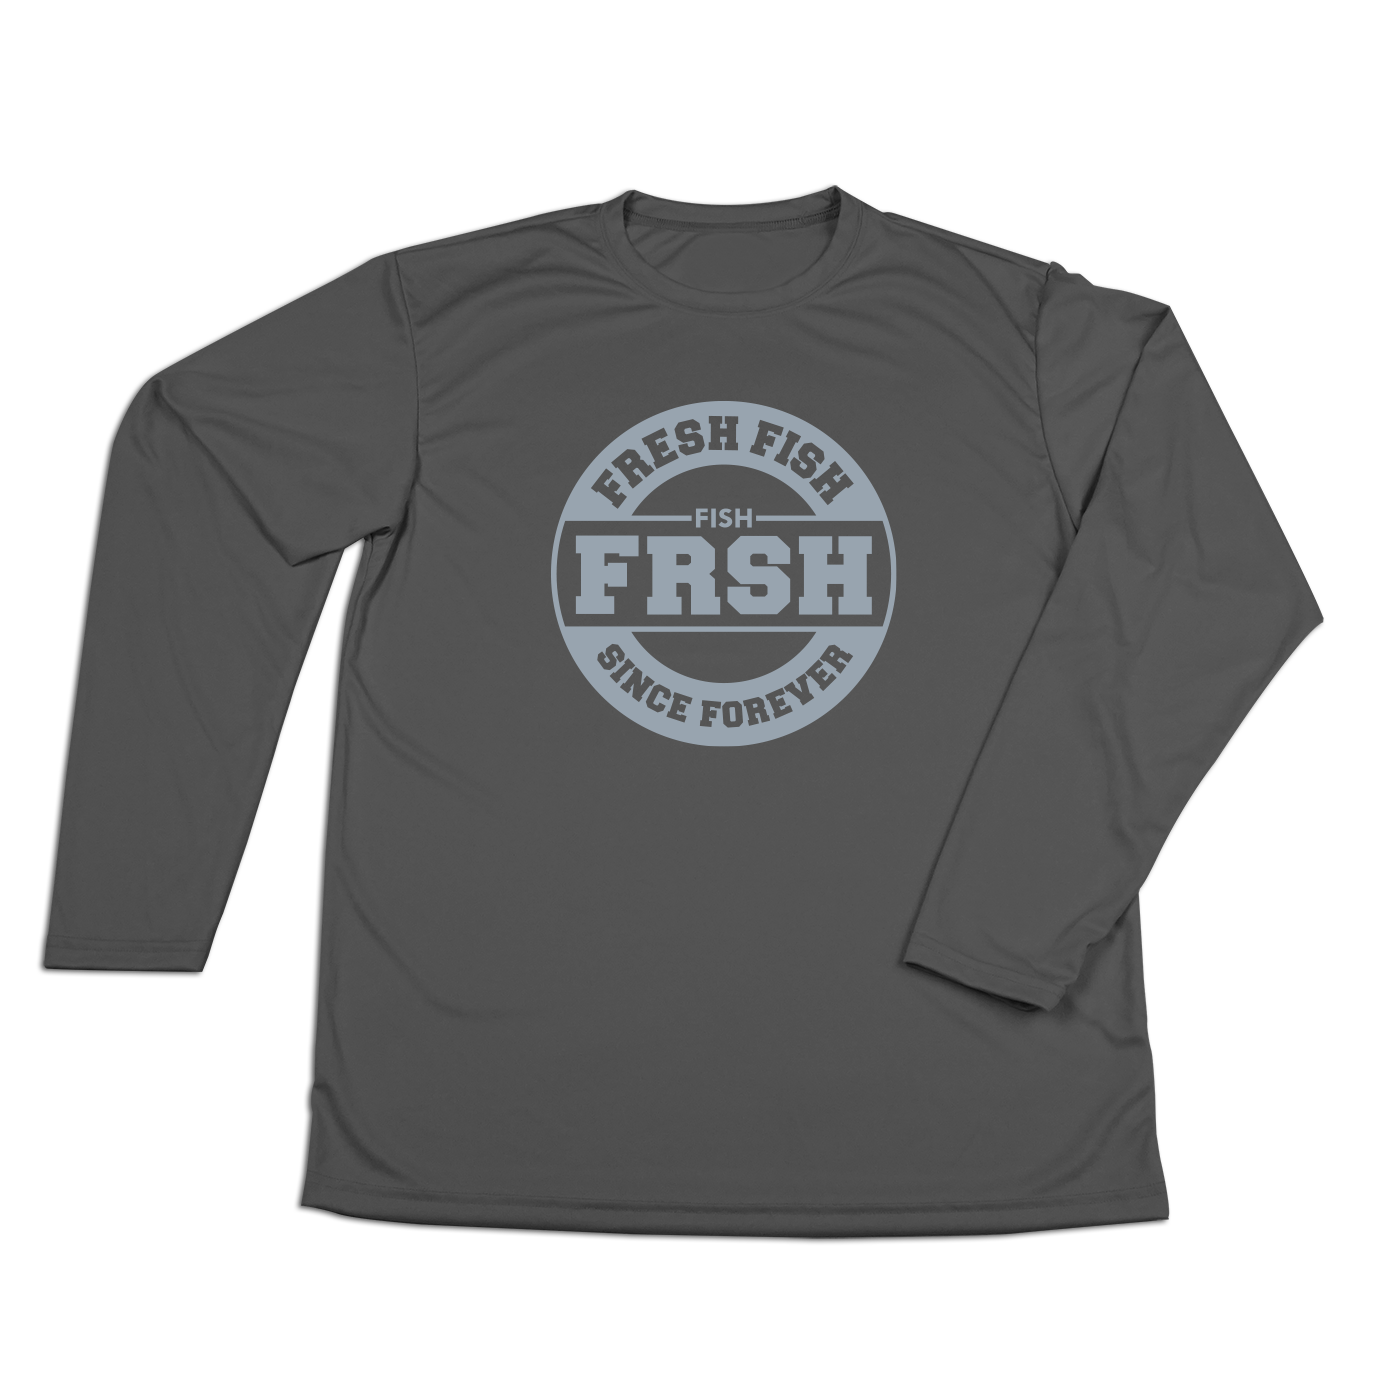 #FRESHFISH Performance Long Sleeve Shirt - Gray Print